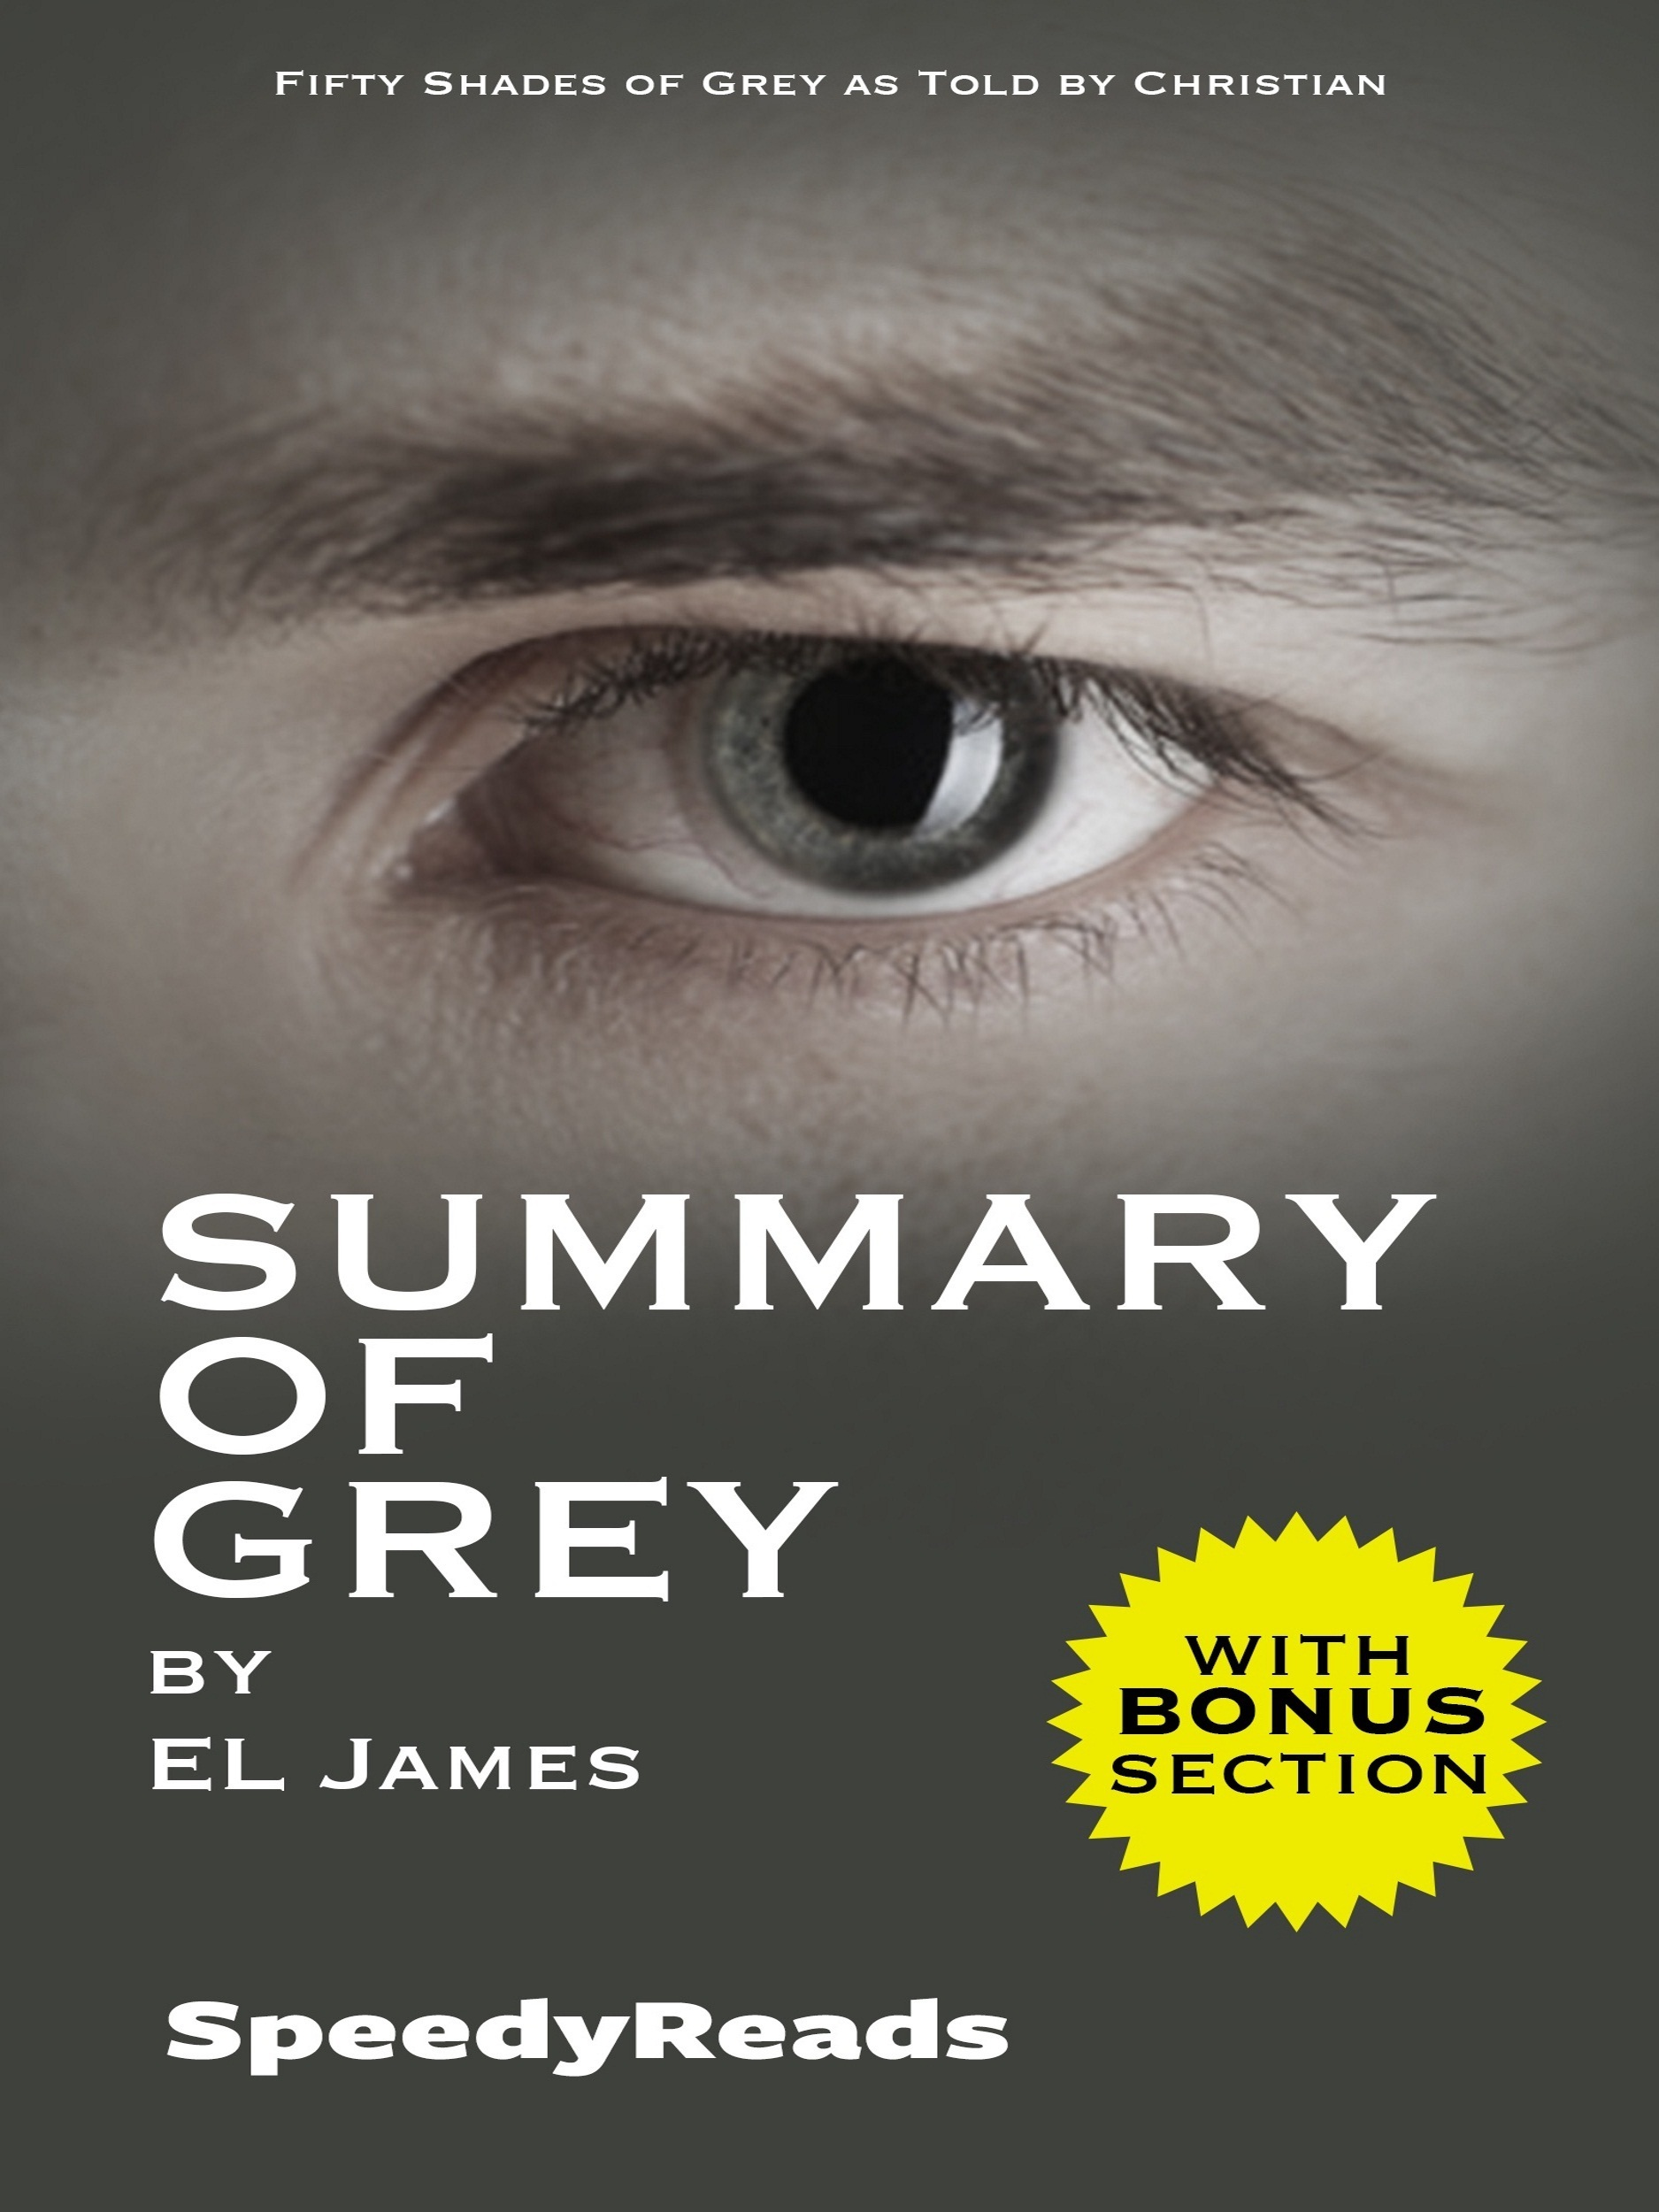 Summary of Grey: Fifty Shades of Grey as Told by Christian